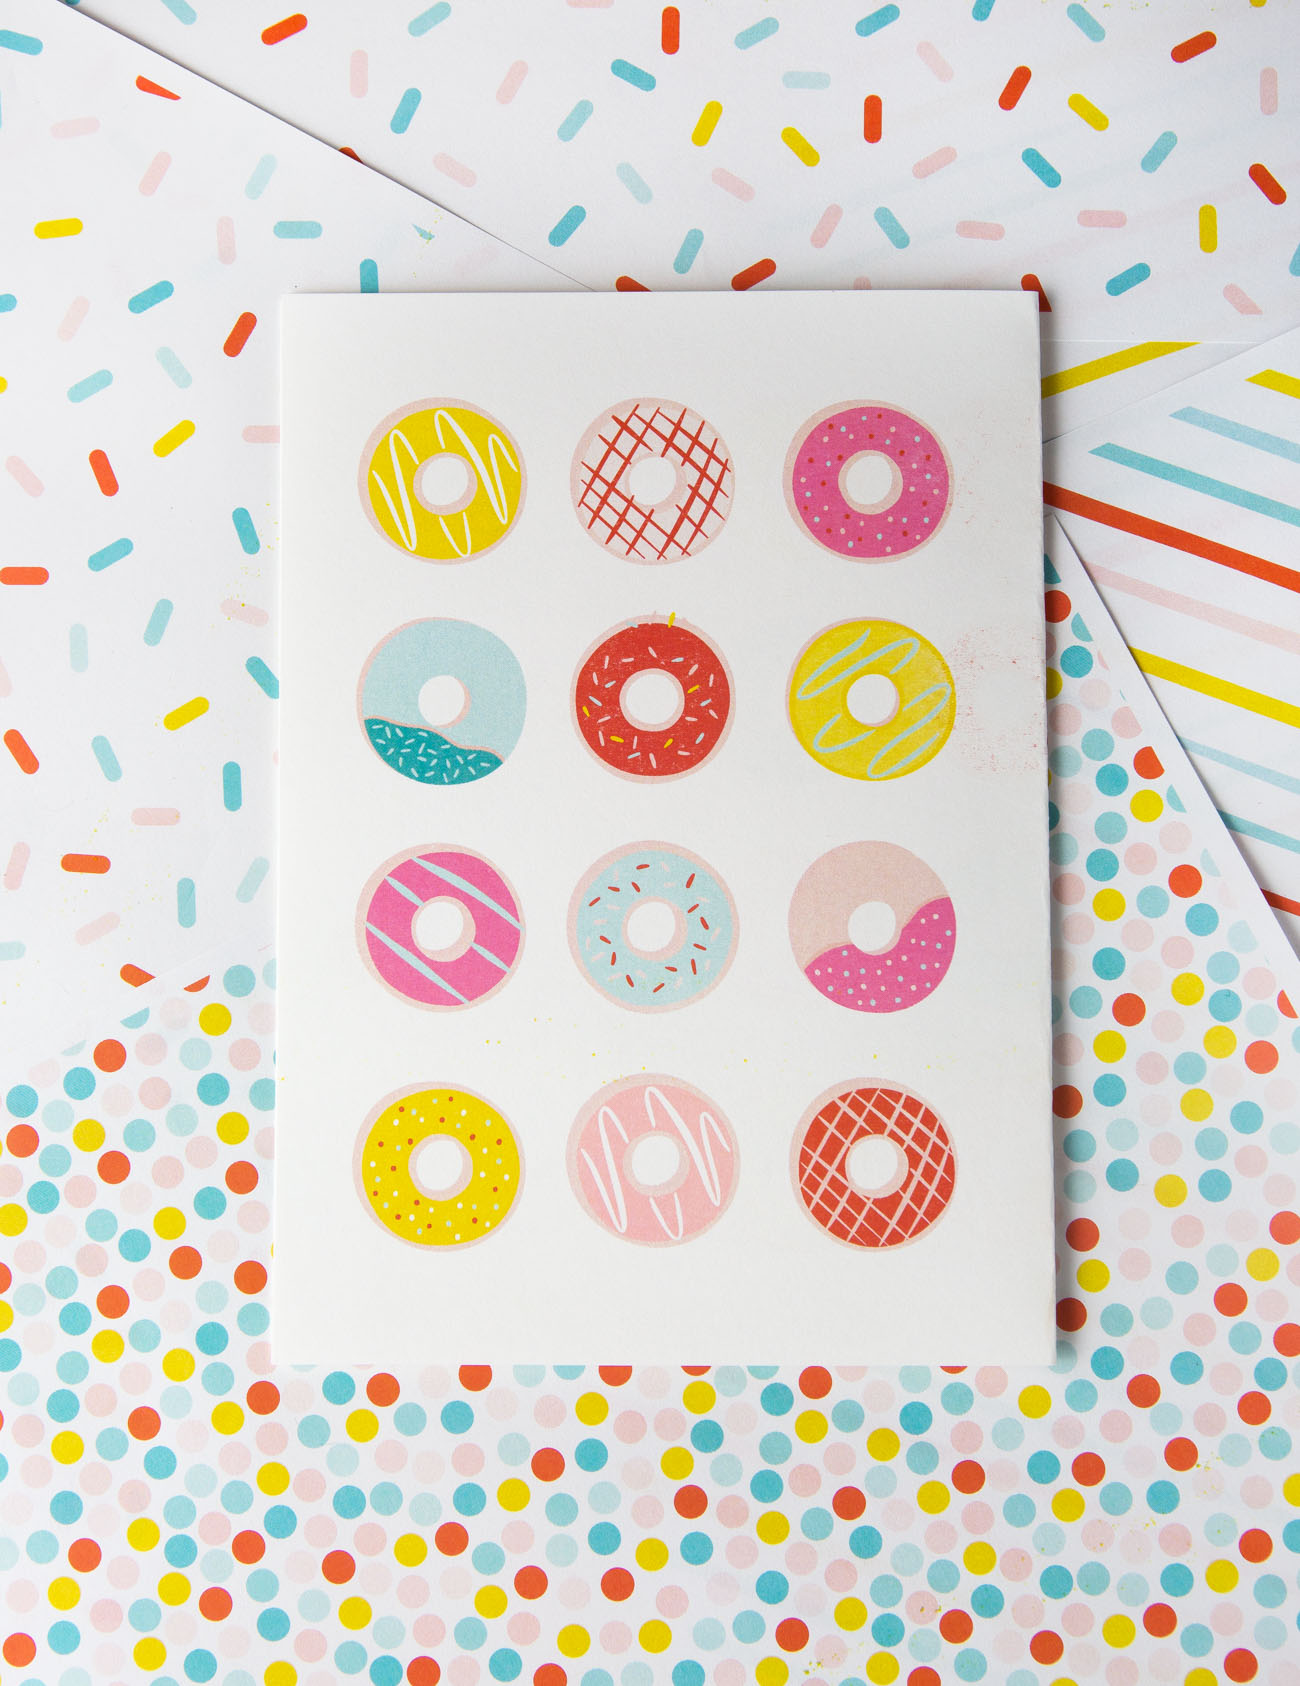 photograph about Donut Printable named Donut Printable Birthday Card - Structure Try to eat Repeat